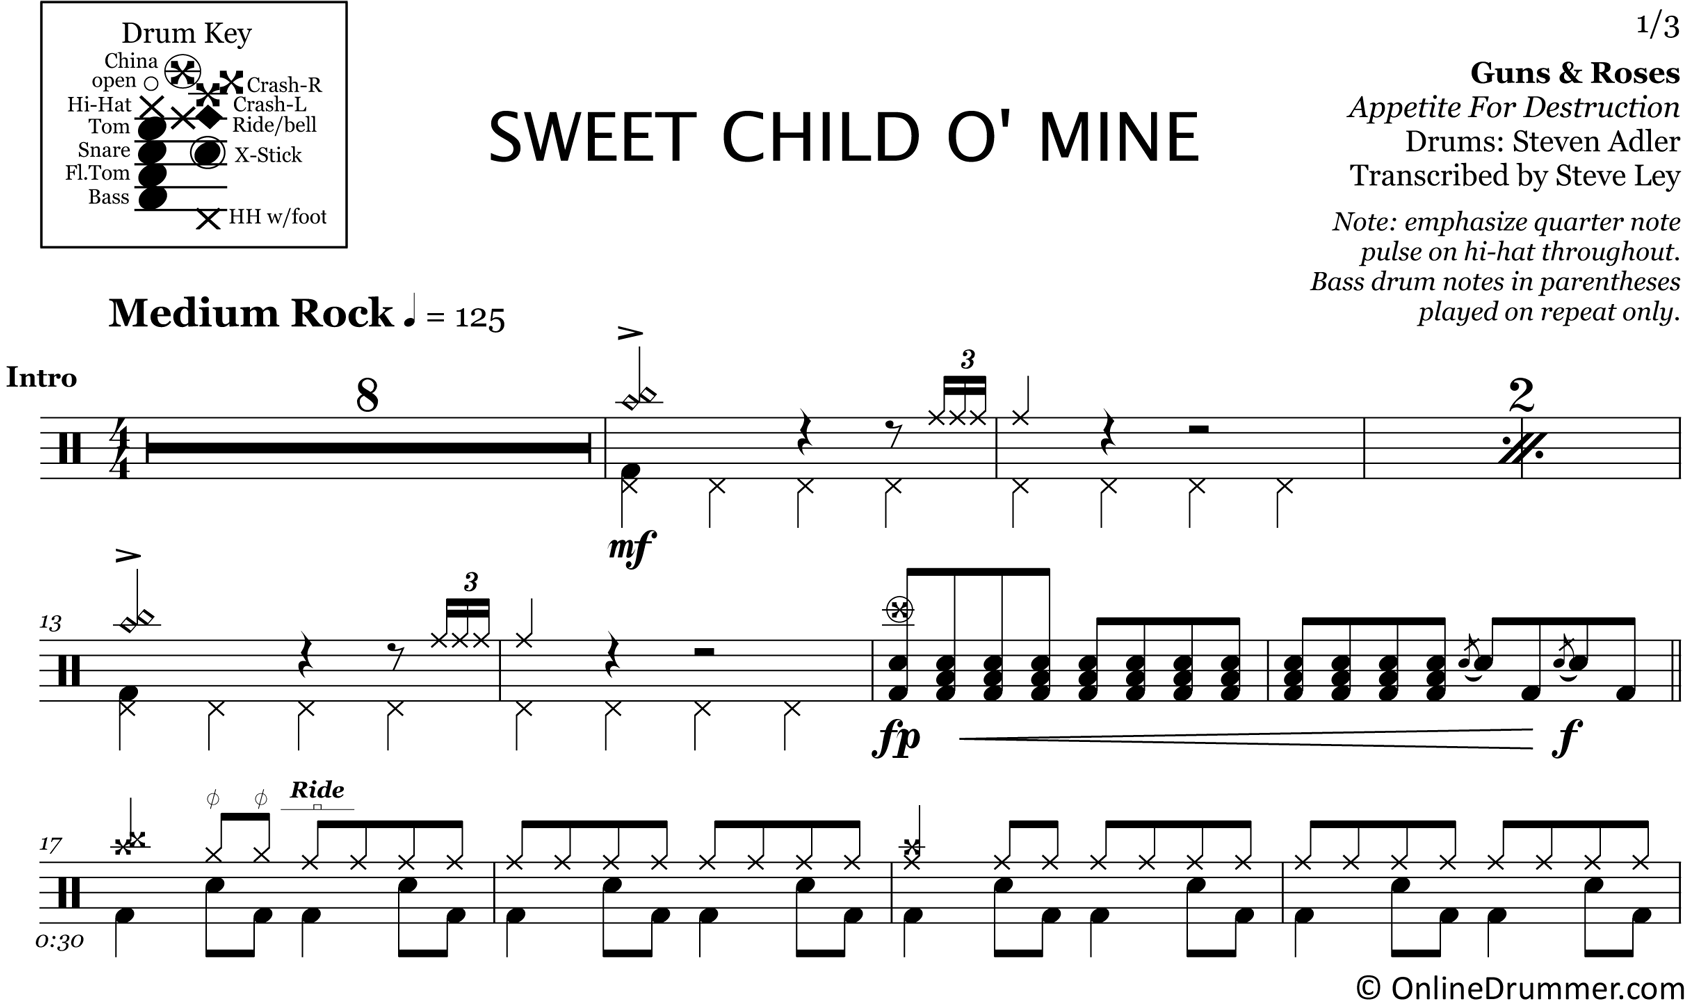 Sweet Child o' Mine - Guns N Roses - Drum Sheet Music